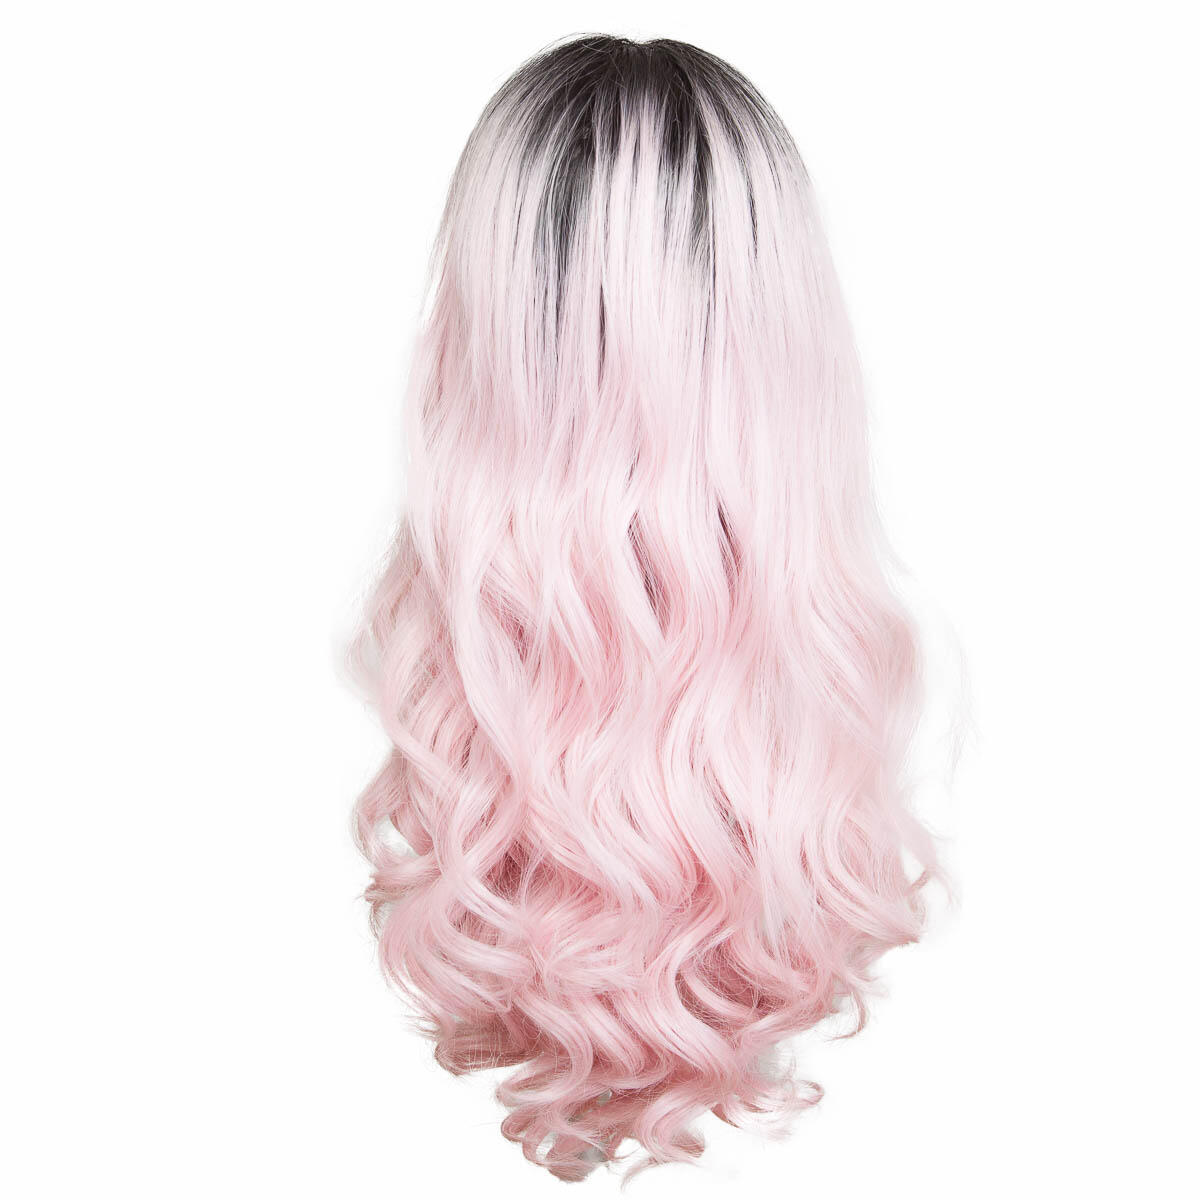 Lace Front Wig O1.2/99.2 Black Brown/Pink 60 cm